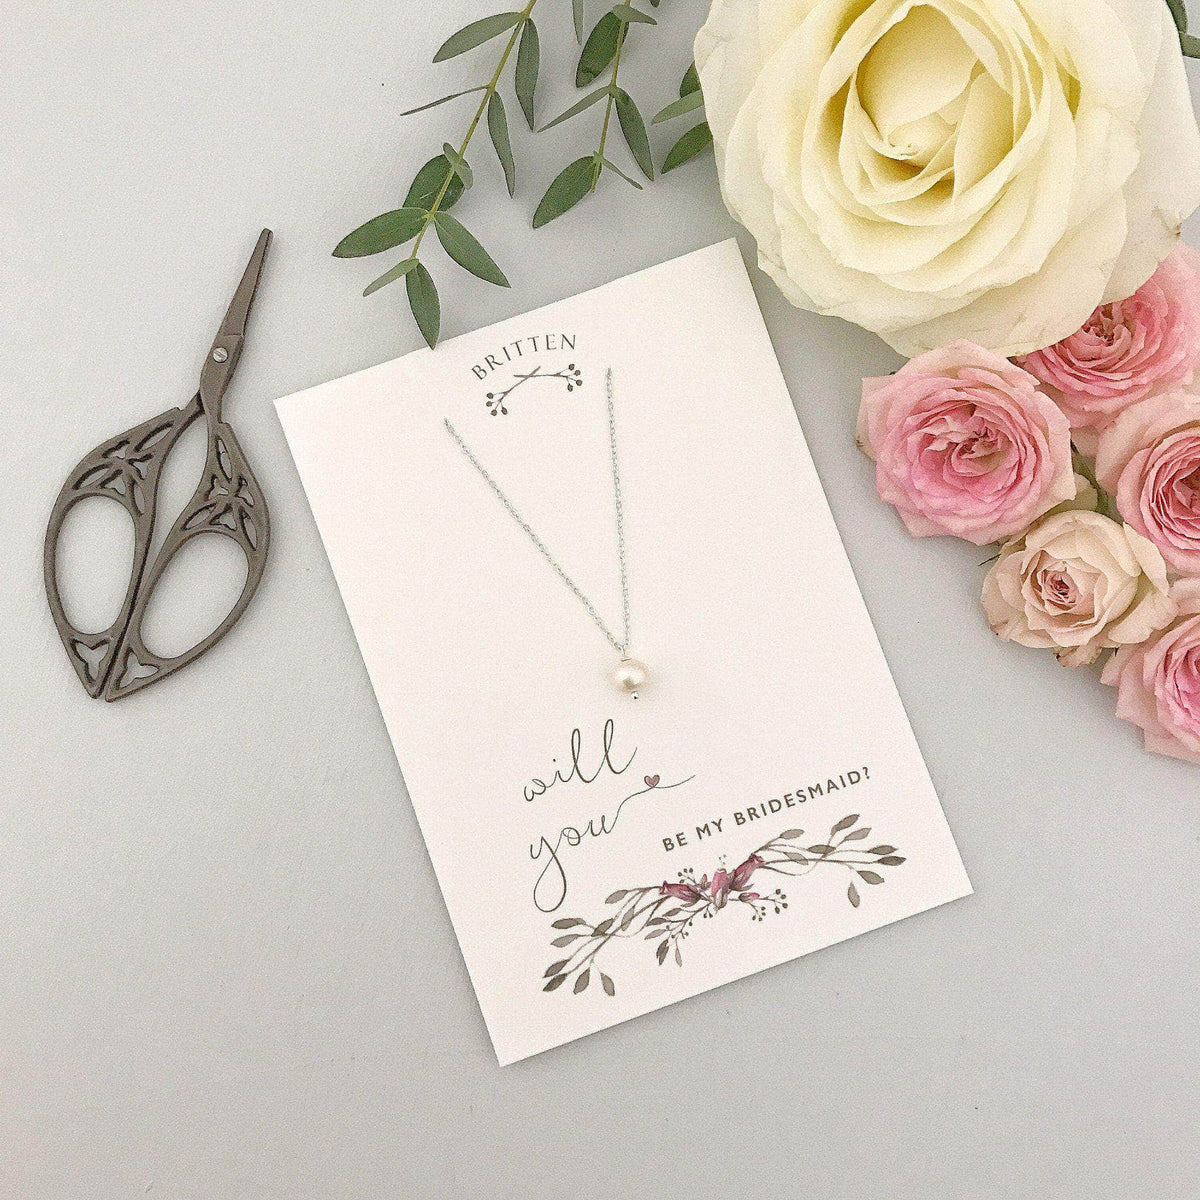 Bridesmaid Gift Silver Will you be my bridesmaid gift necklace - 'Seville' in silver